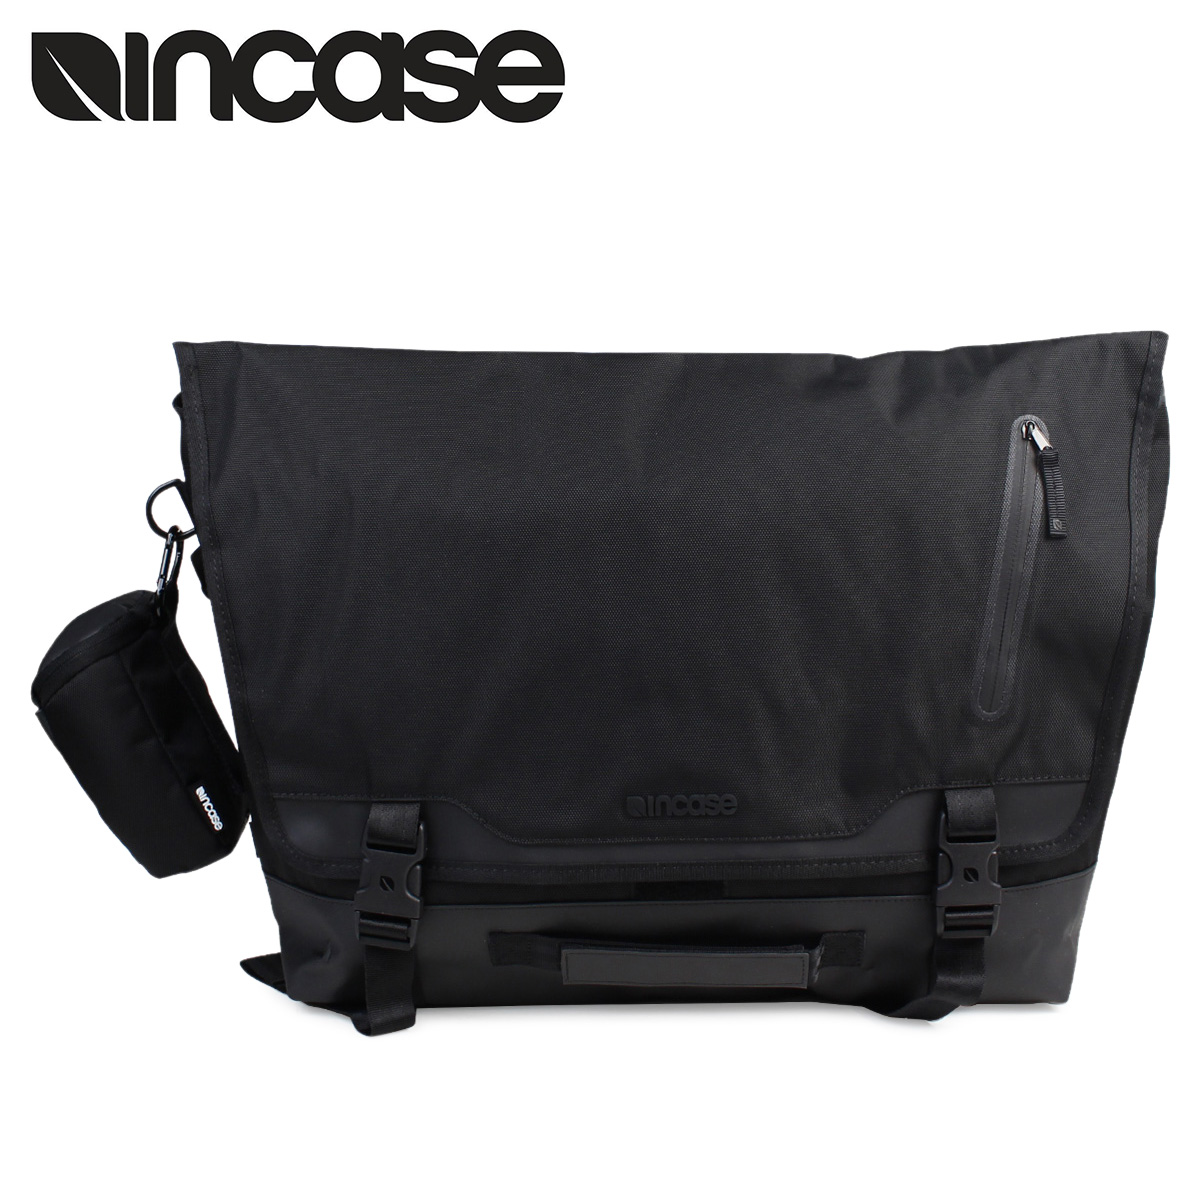 96e95237fc Whats up Sports  INCASE in case back shoulder messenger bag SPORT MESSENGER  INCO200284 men gap Dis black  6 9 Shinnyu load